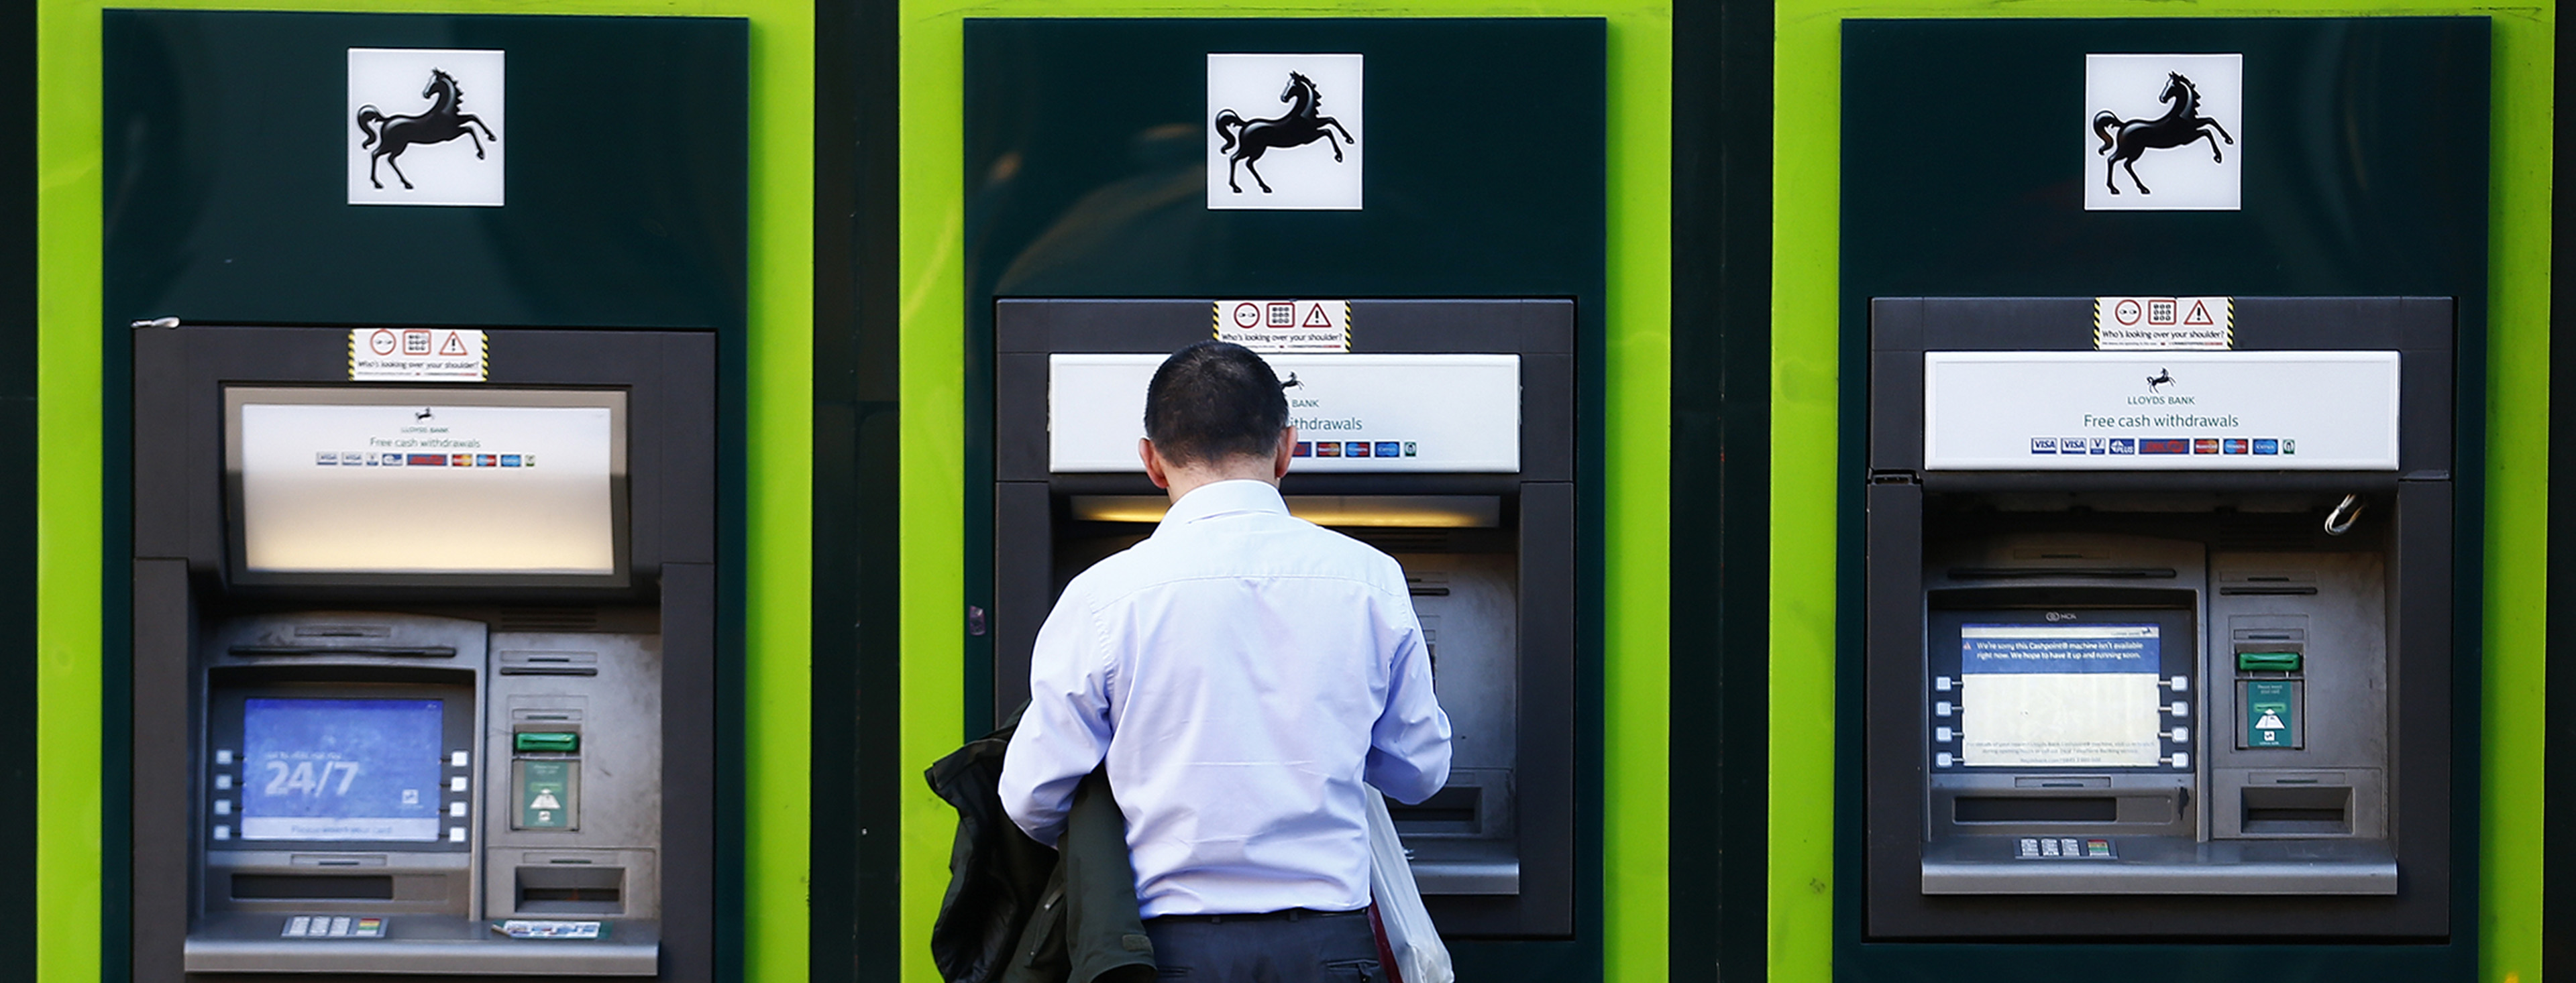 A man uses an ATM  outside a branch of Lloyds Bank in central London